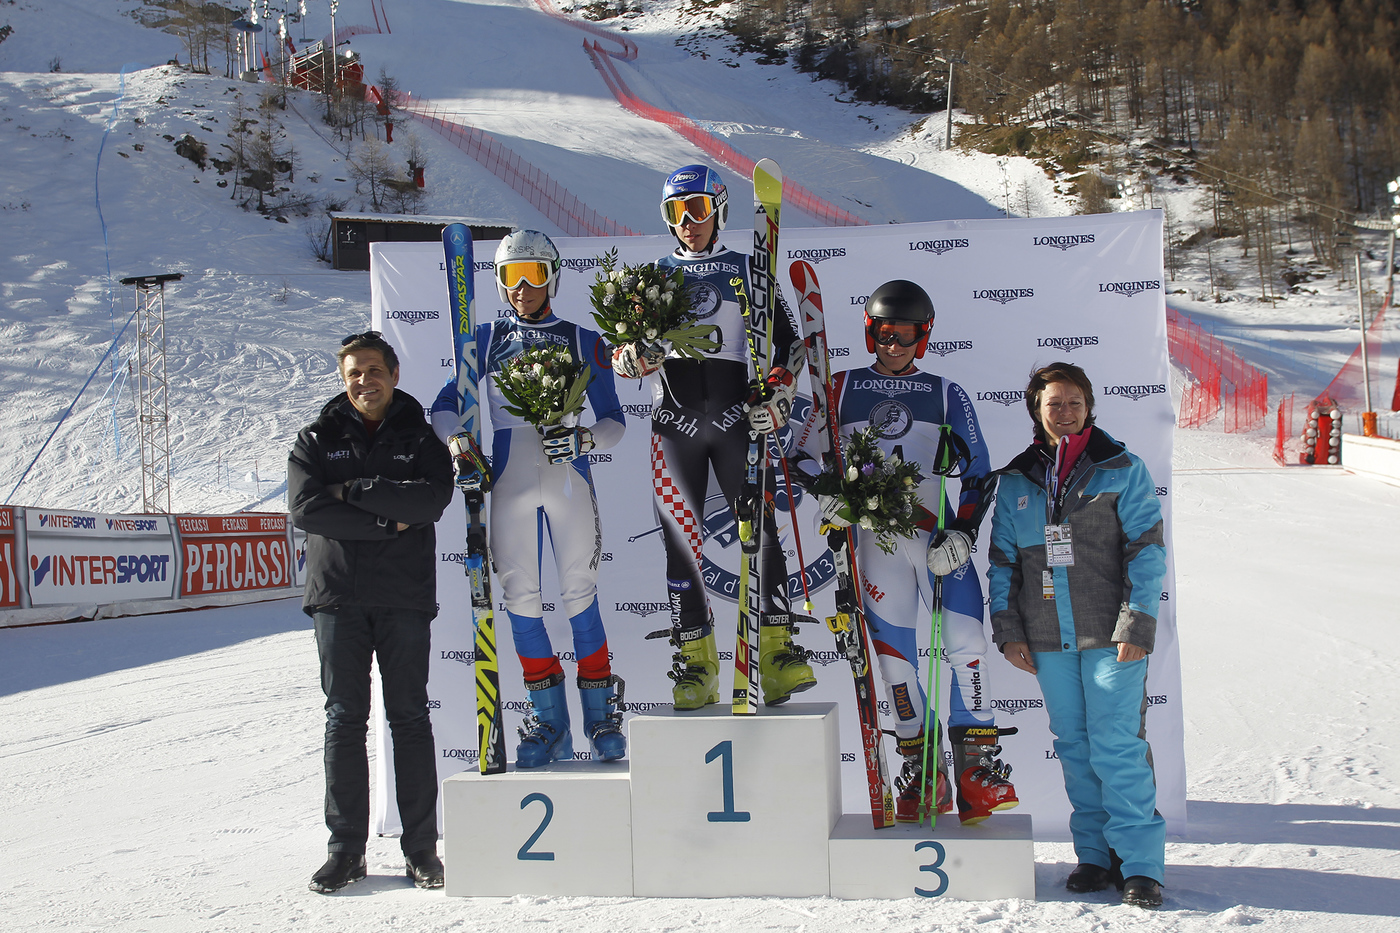 Longines Alpine Skiing Event: The Longines Future Ski Champion 2013 2